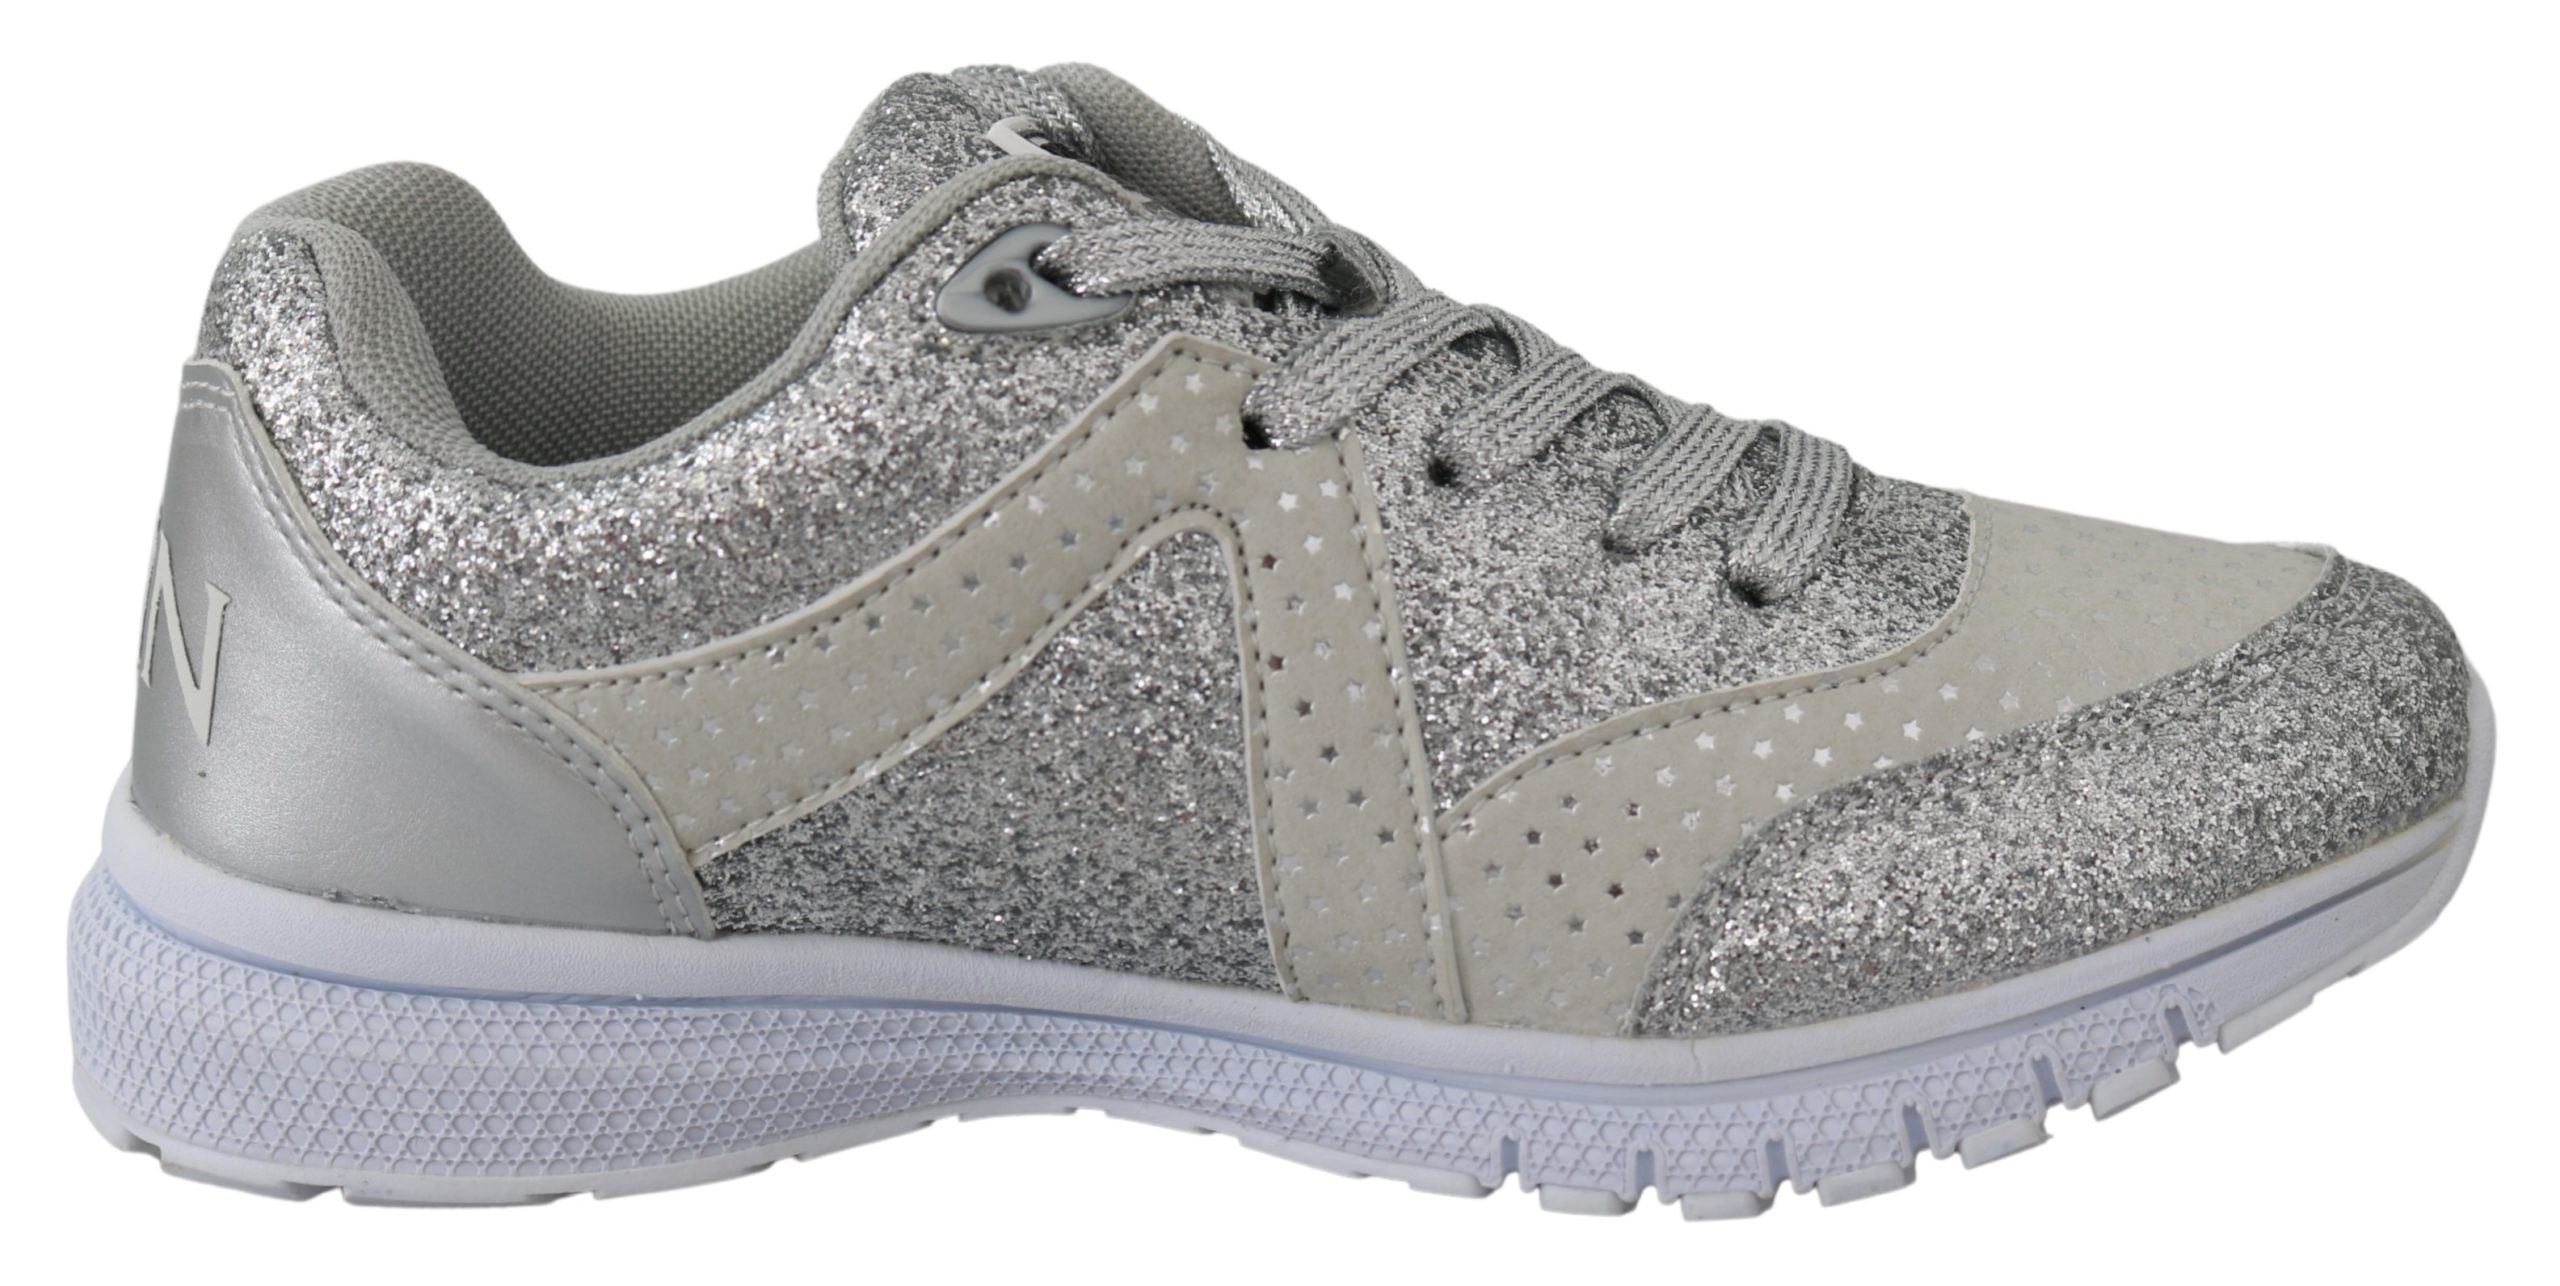 Silver Polyester Runner Jasmines Sneakers Shoes - EU36/US6